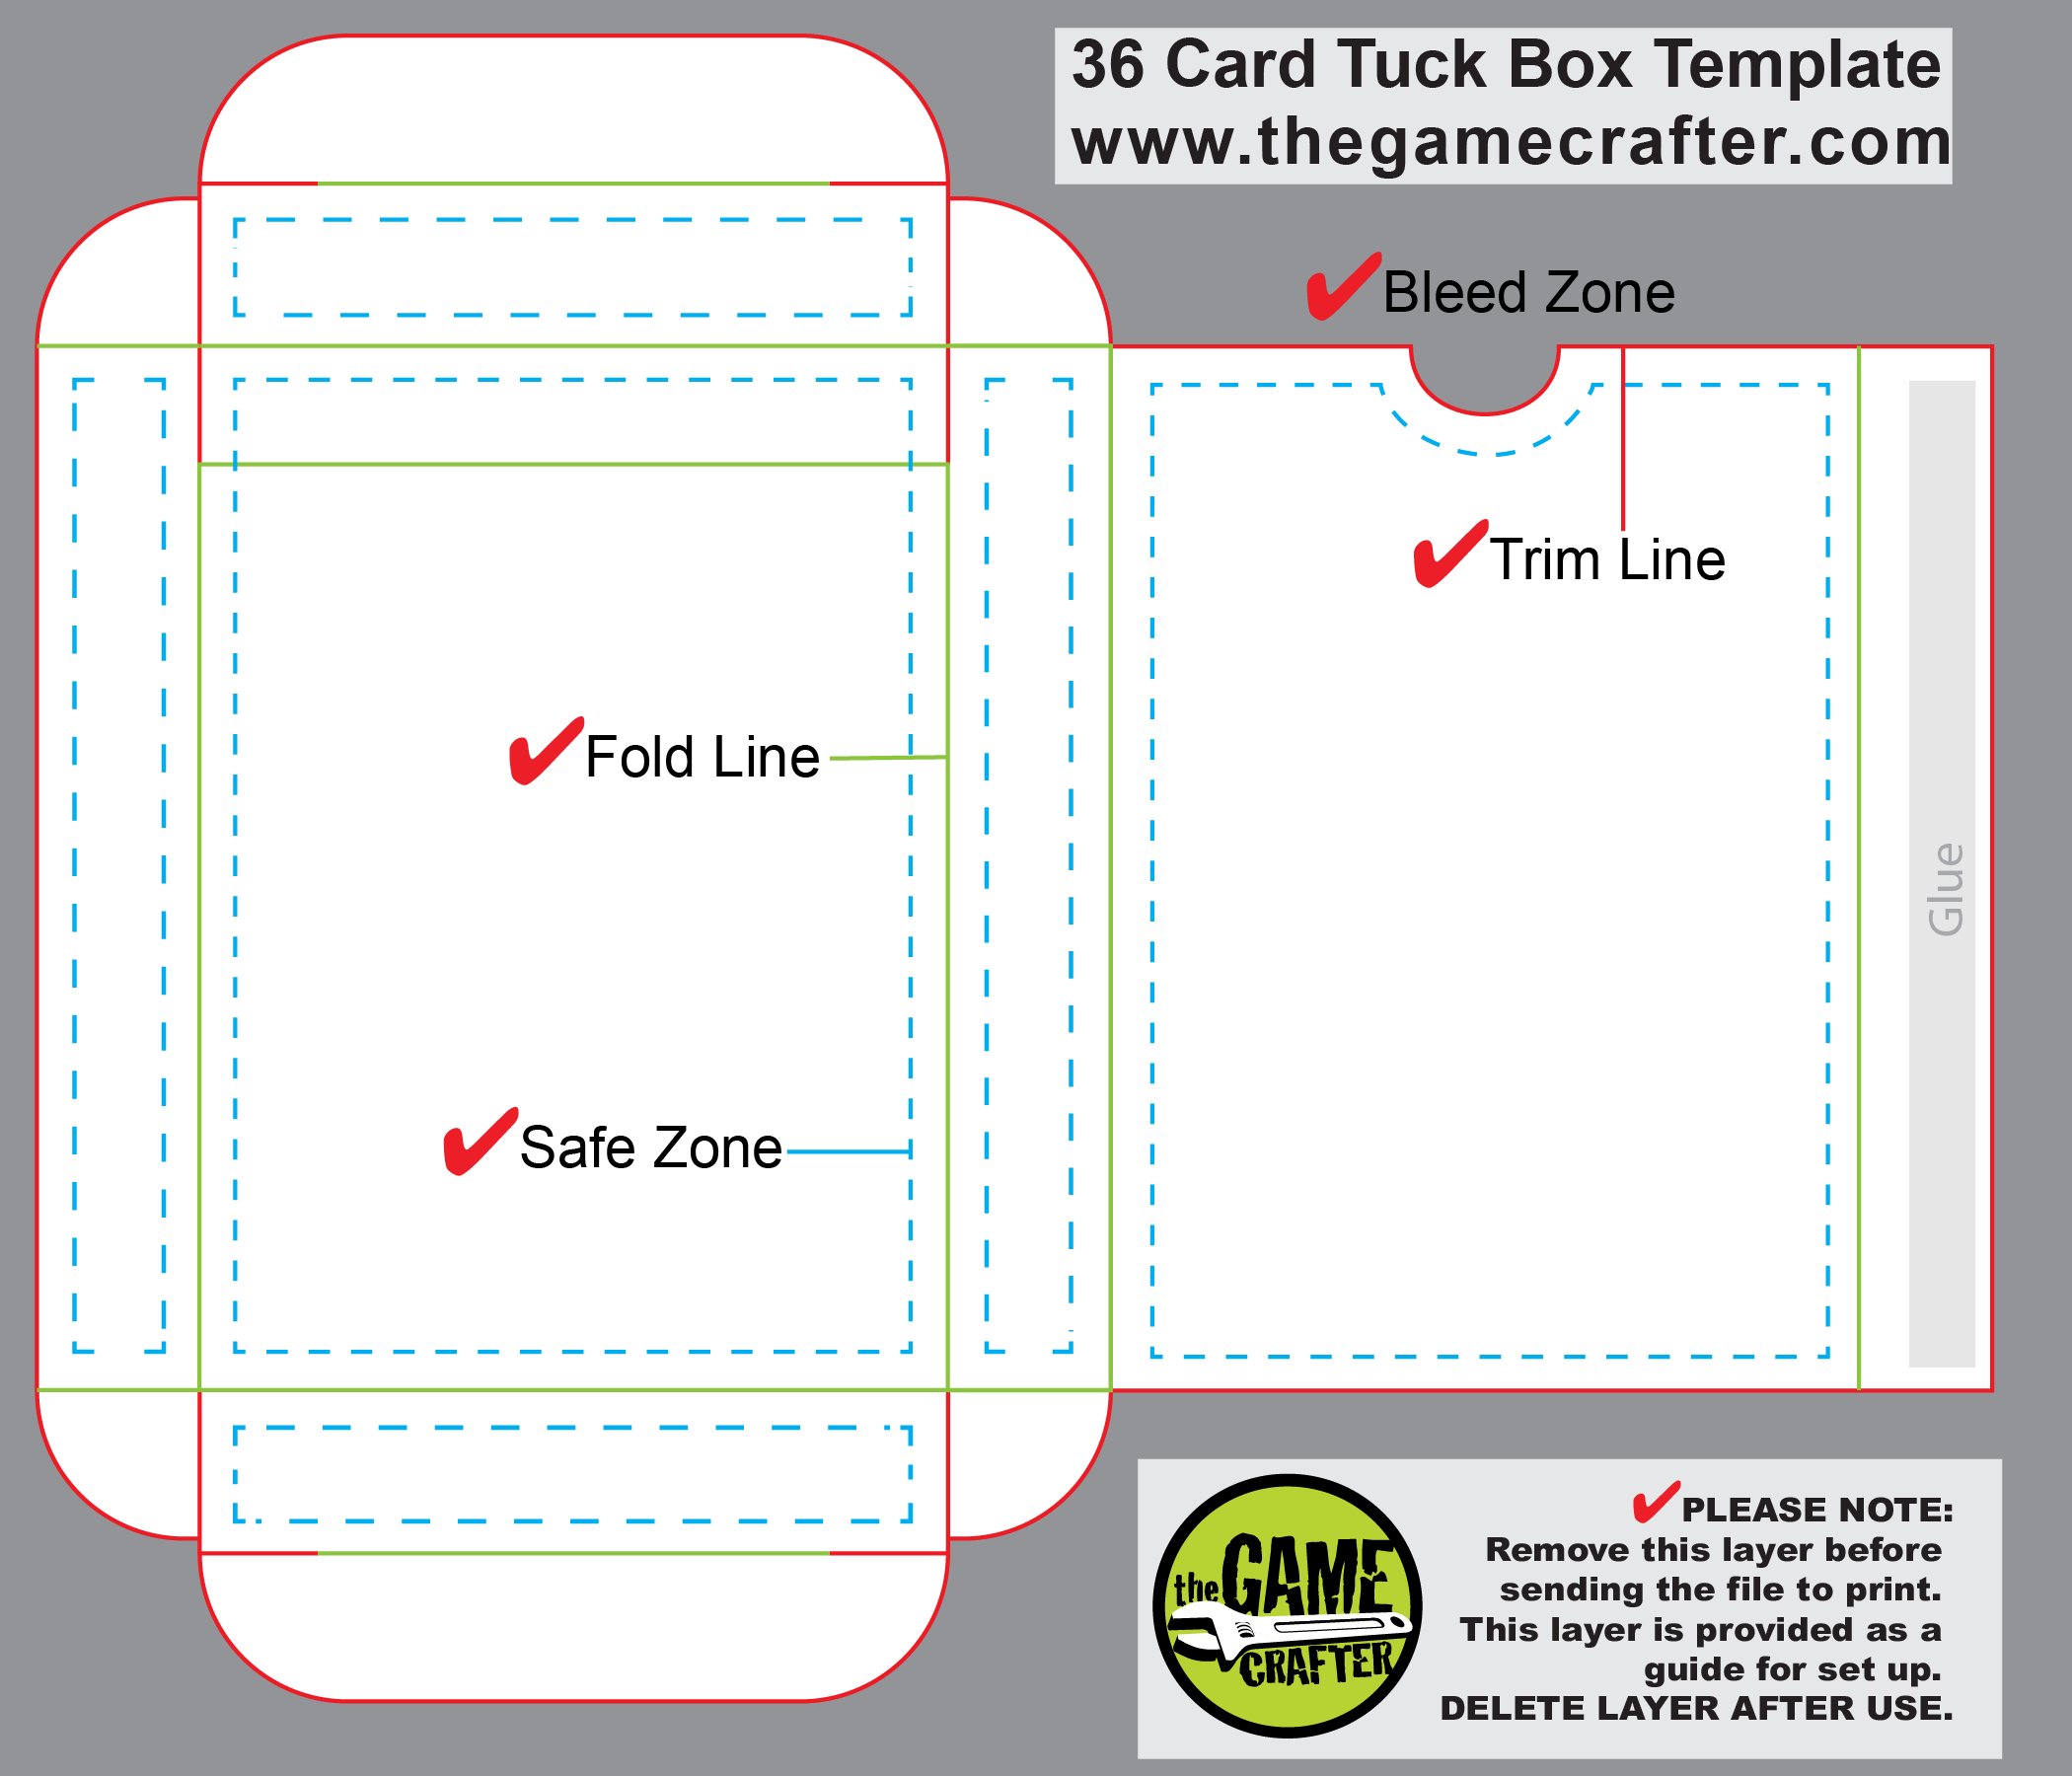 35 Report Name Card Box Template For Free by Name Card Box Template